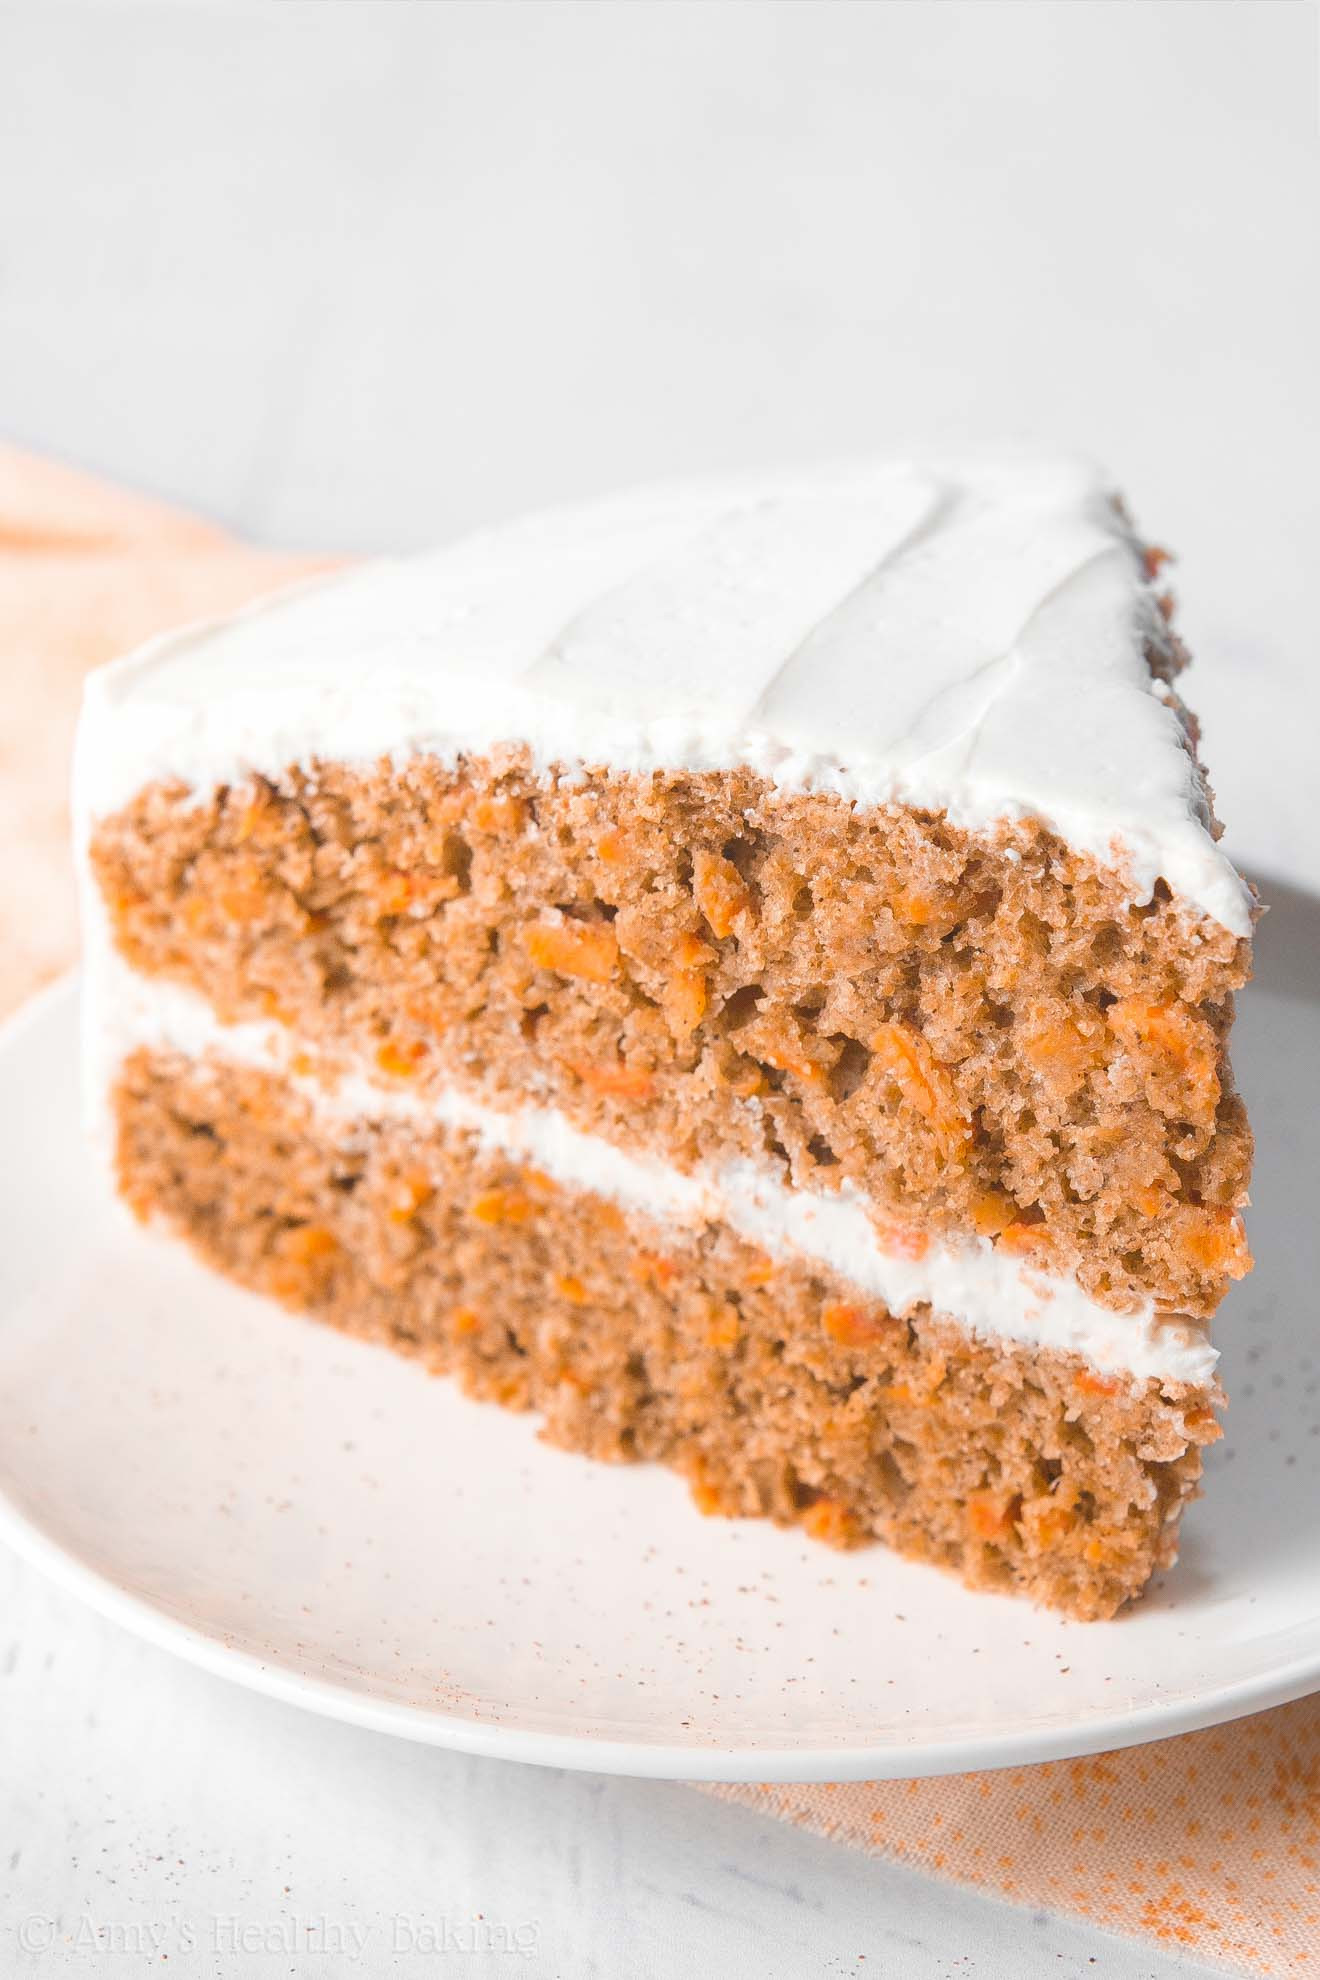 Healthy Cake Recipe  The Ultimate Healthy Carrot Cake